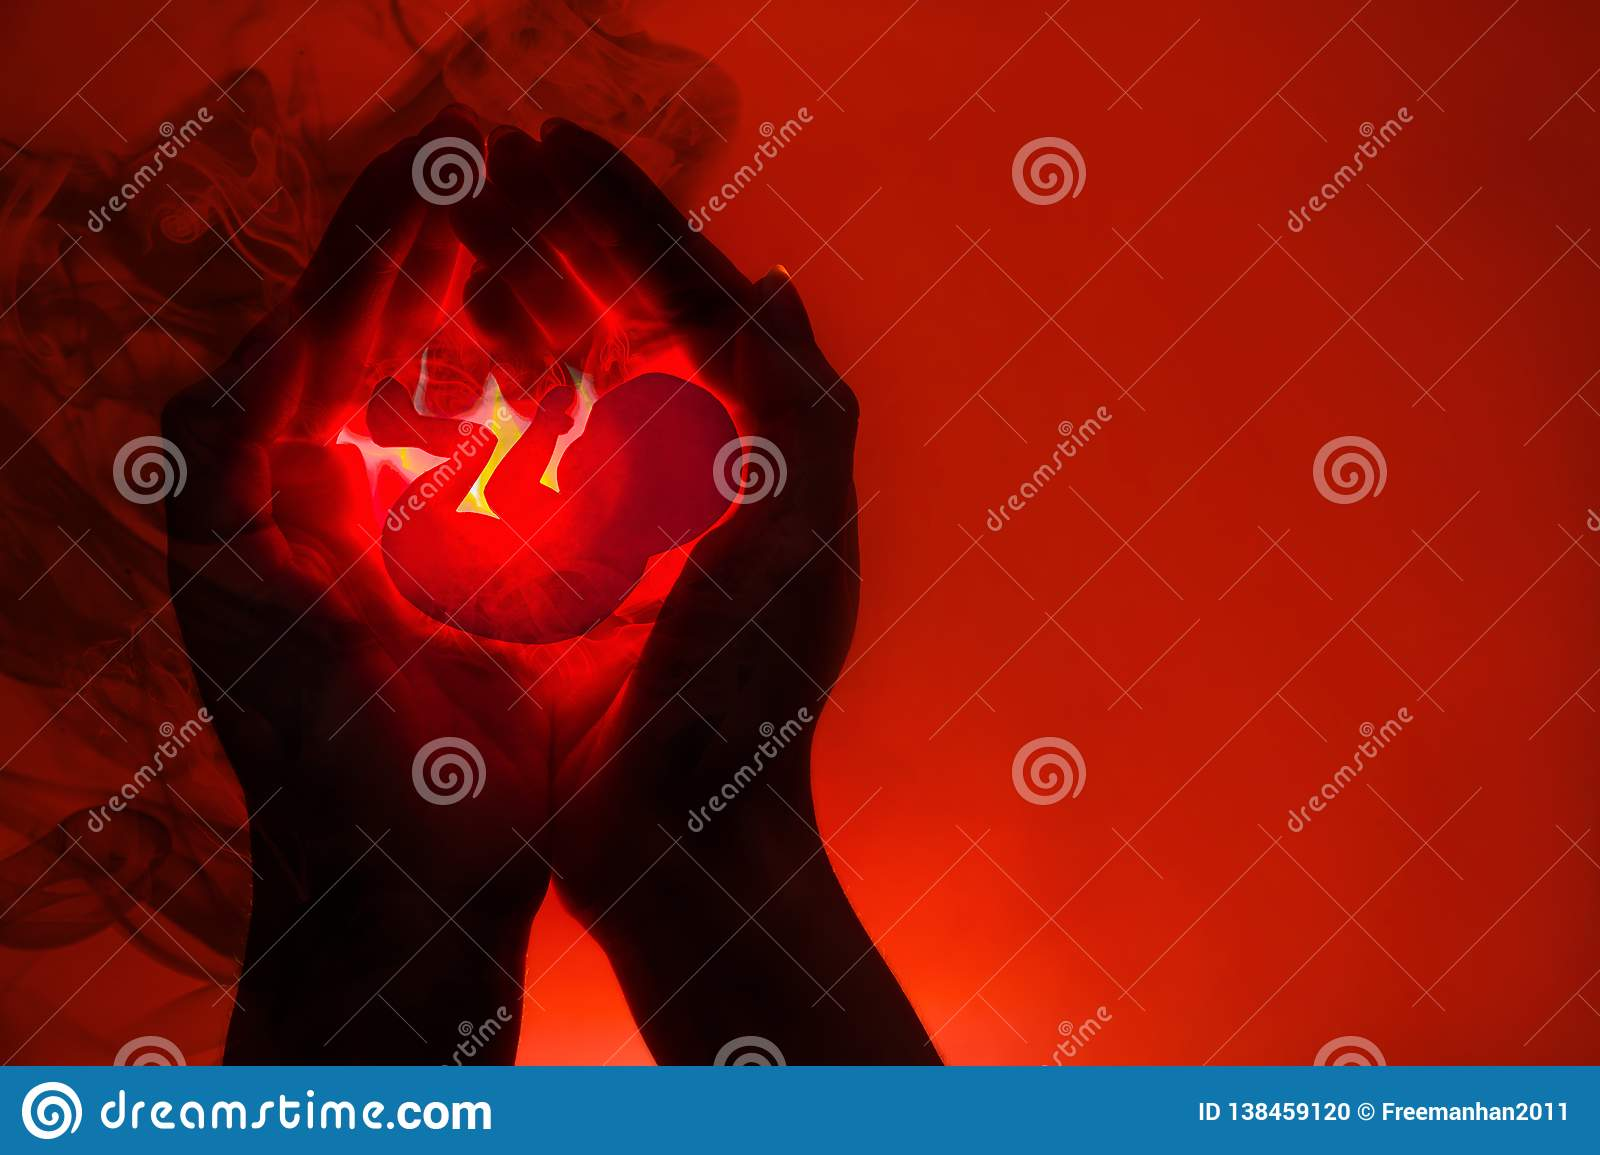 Silhouette of female hands and application in the form of an embryo.The concept of abortion . Hands dissolve in the black smoke